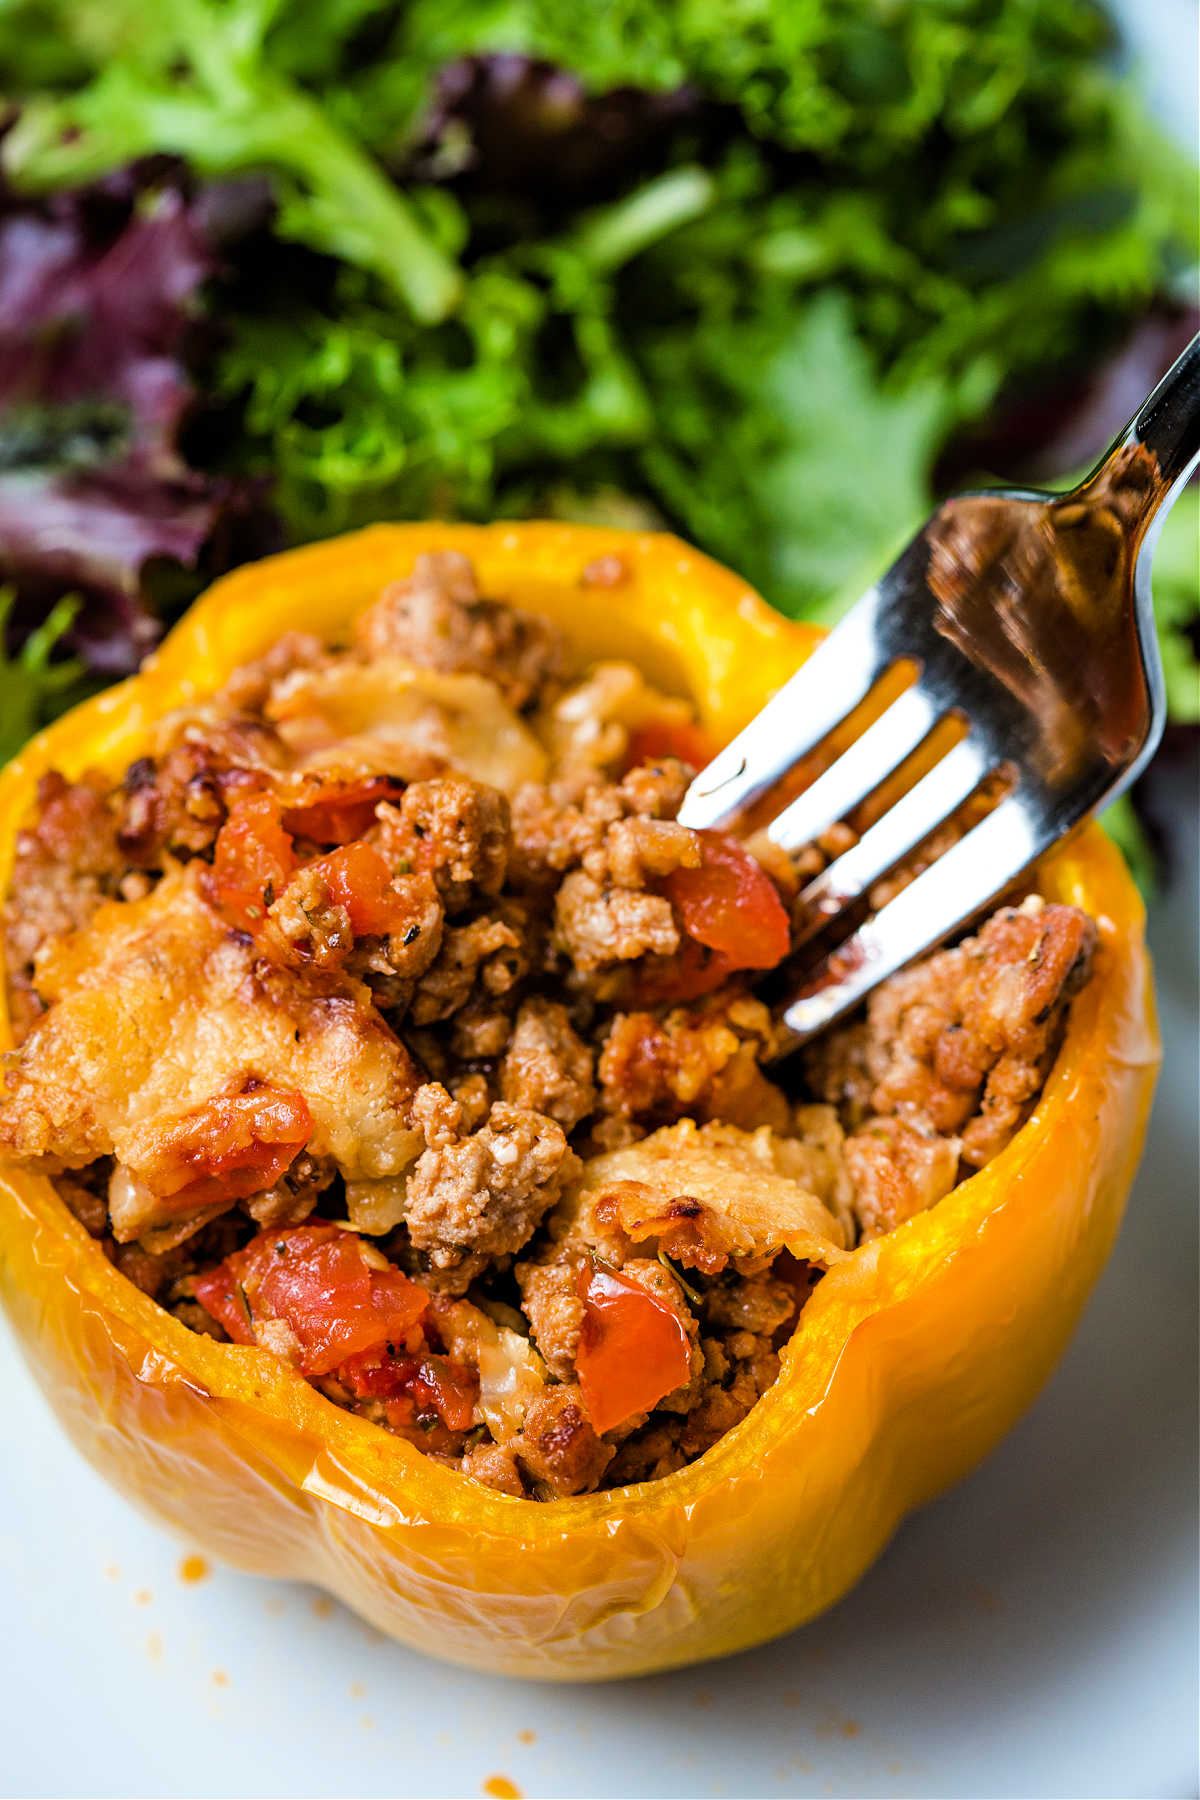 a fork spearing a bite from a yellow bell pepper stuffed with saucy turkey mixture on a plate with a side salad.